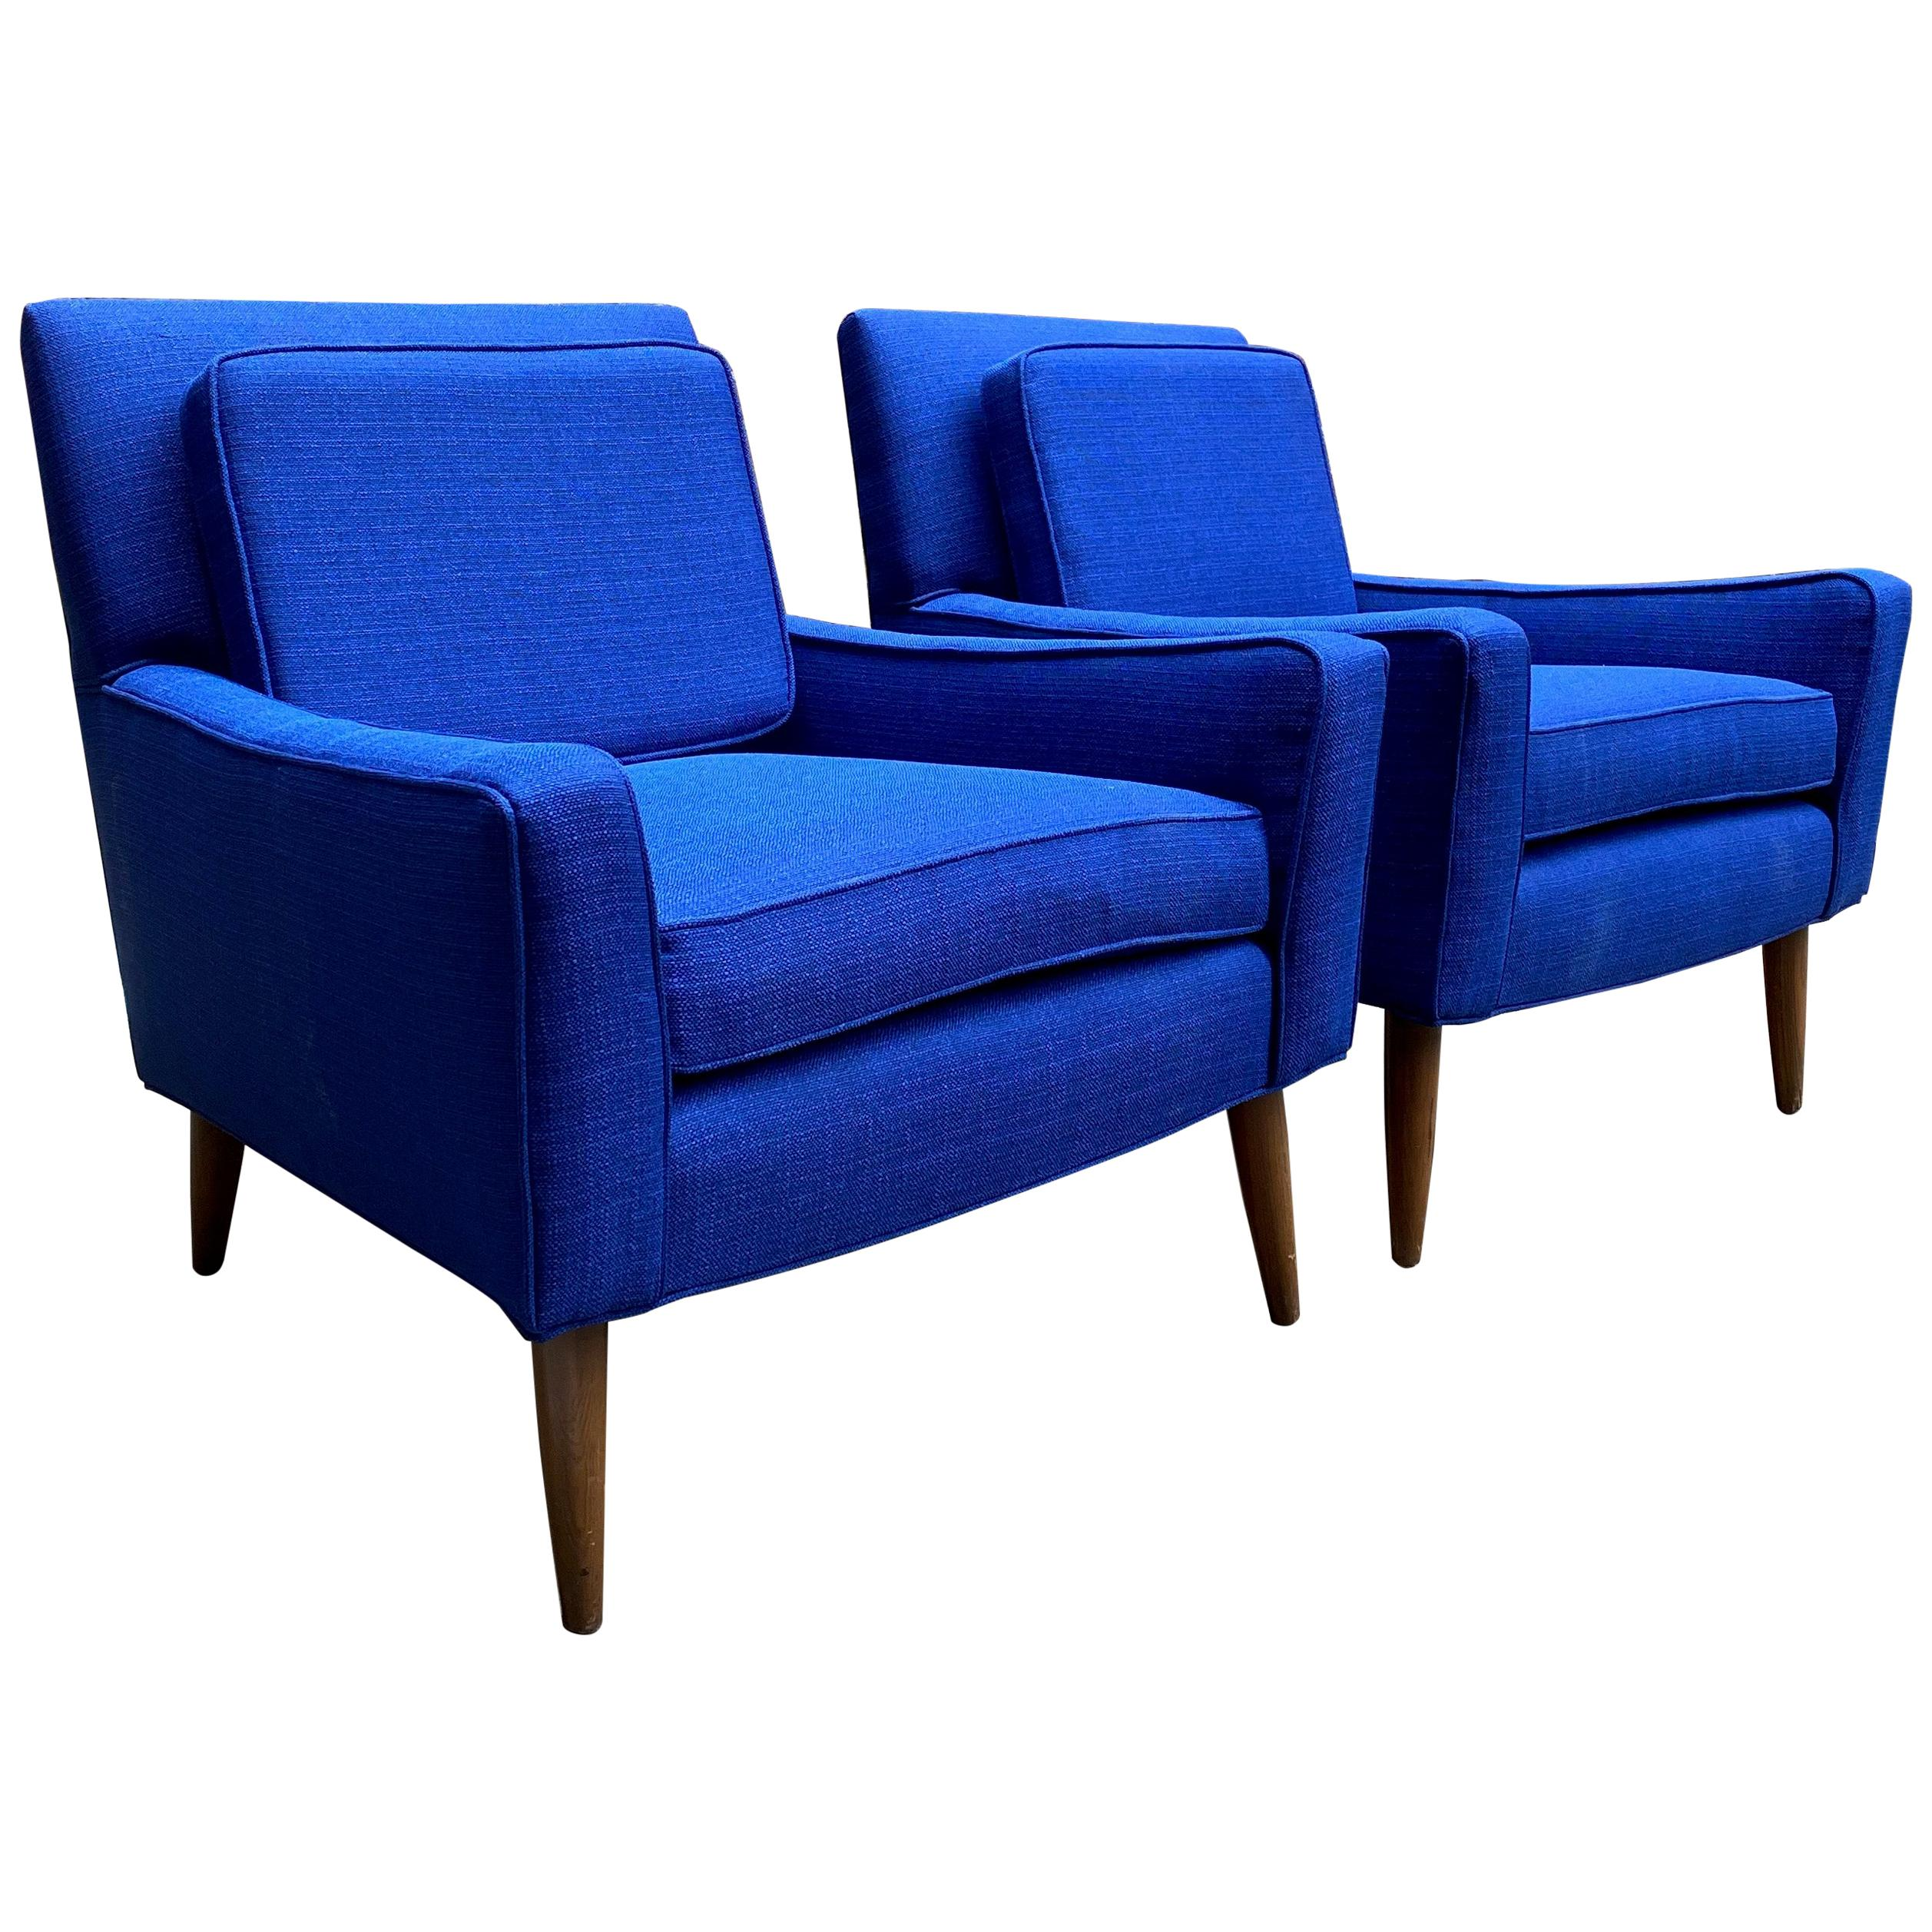 Pair of 1960s Lounge Chairs the Manner of Paul McCobb